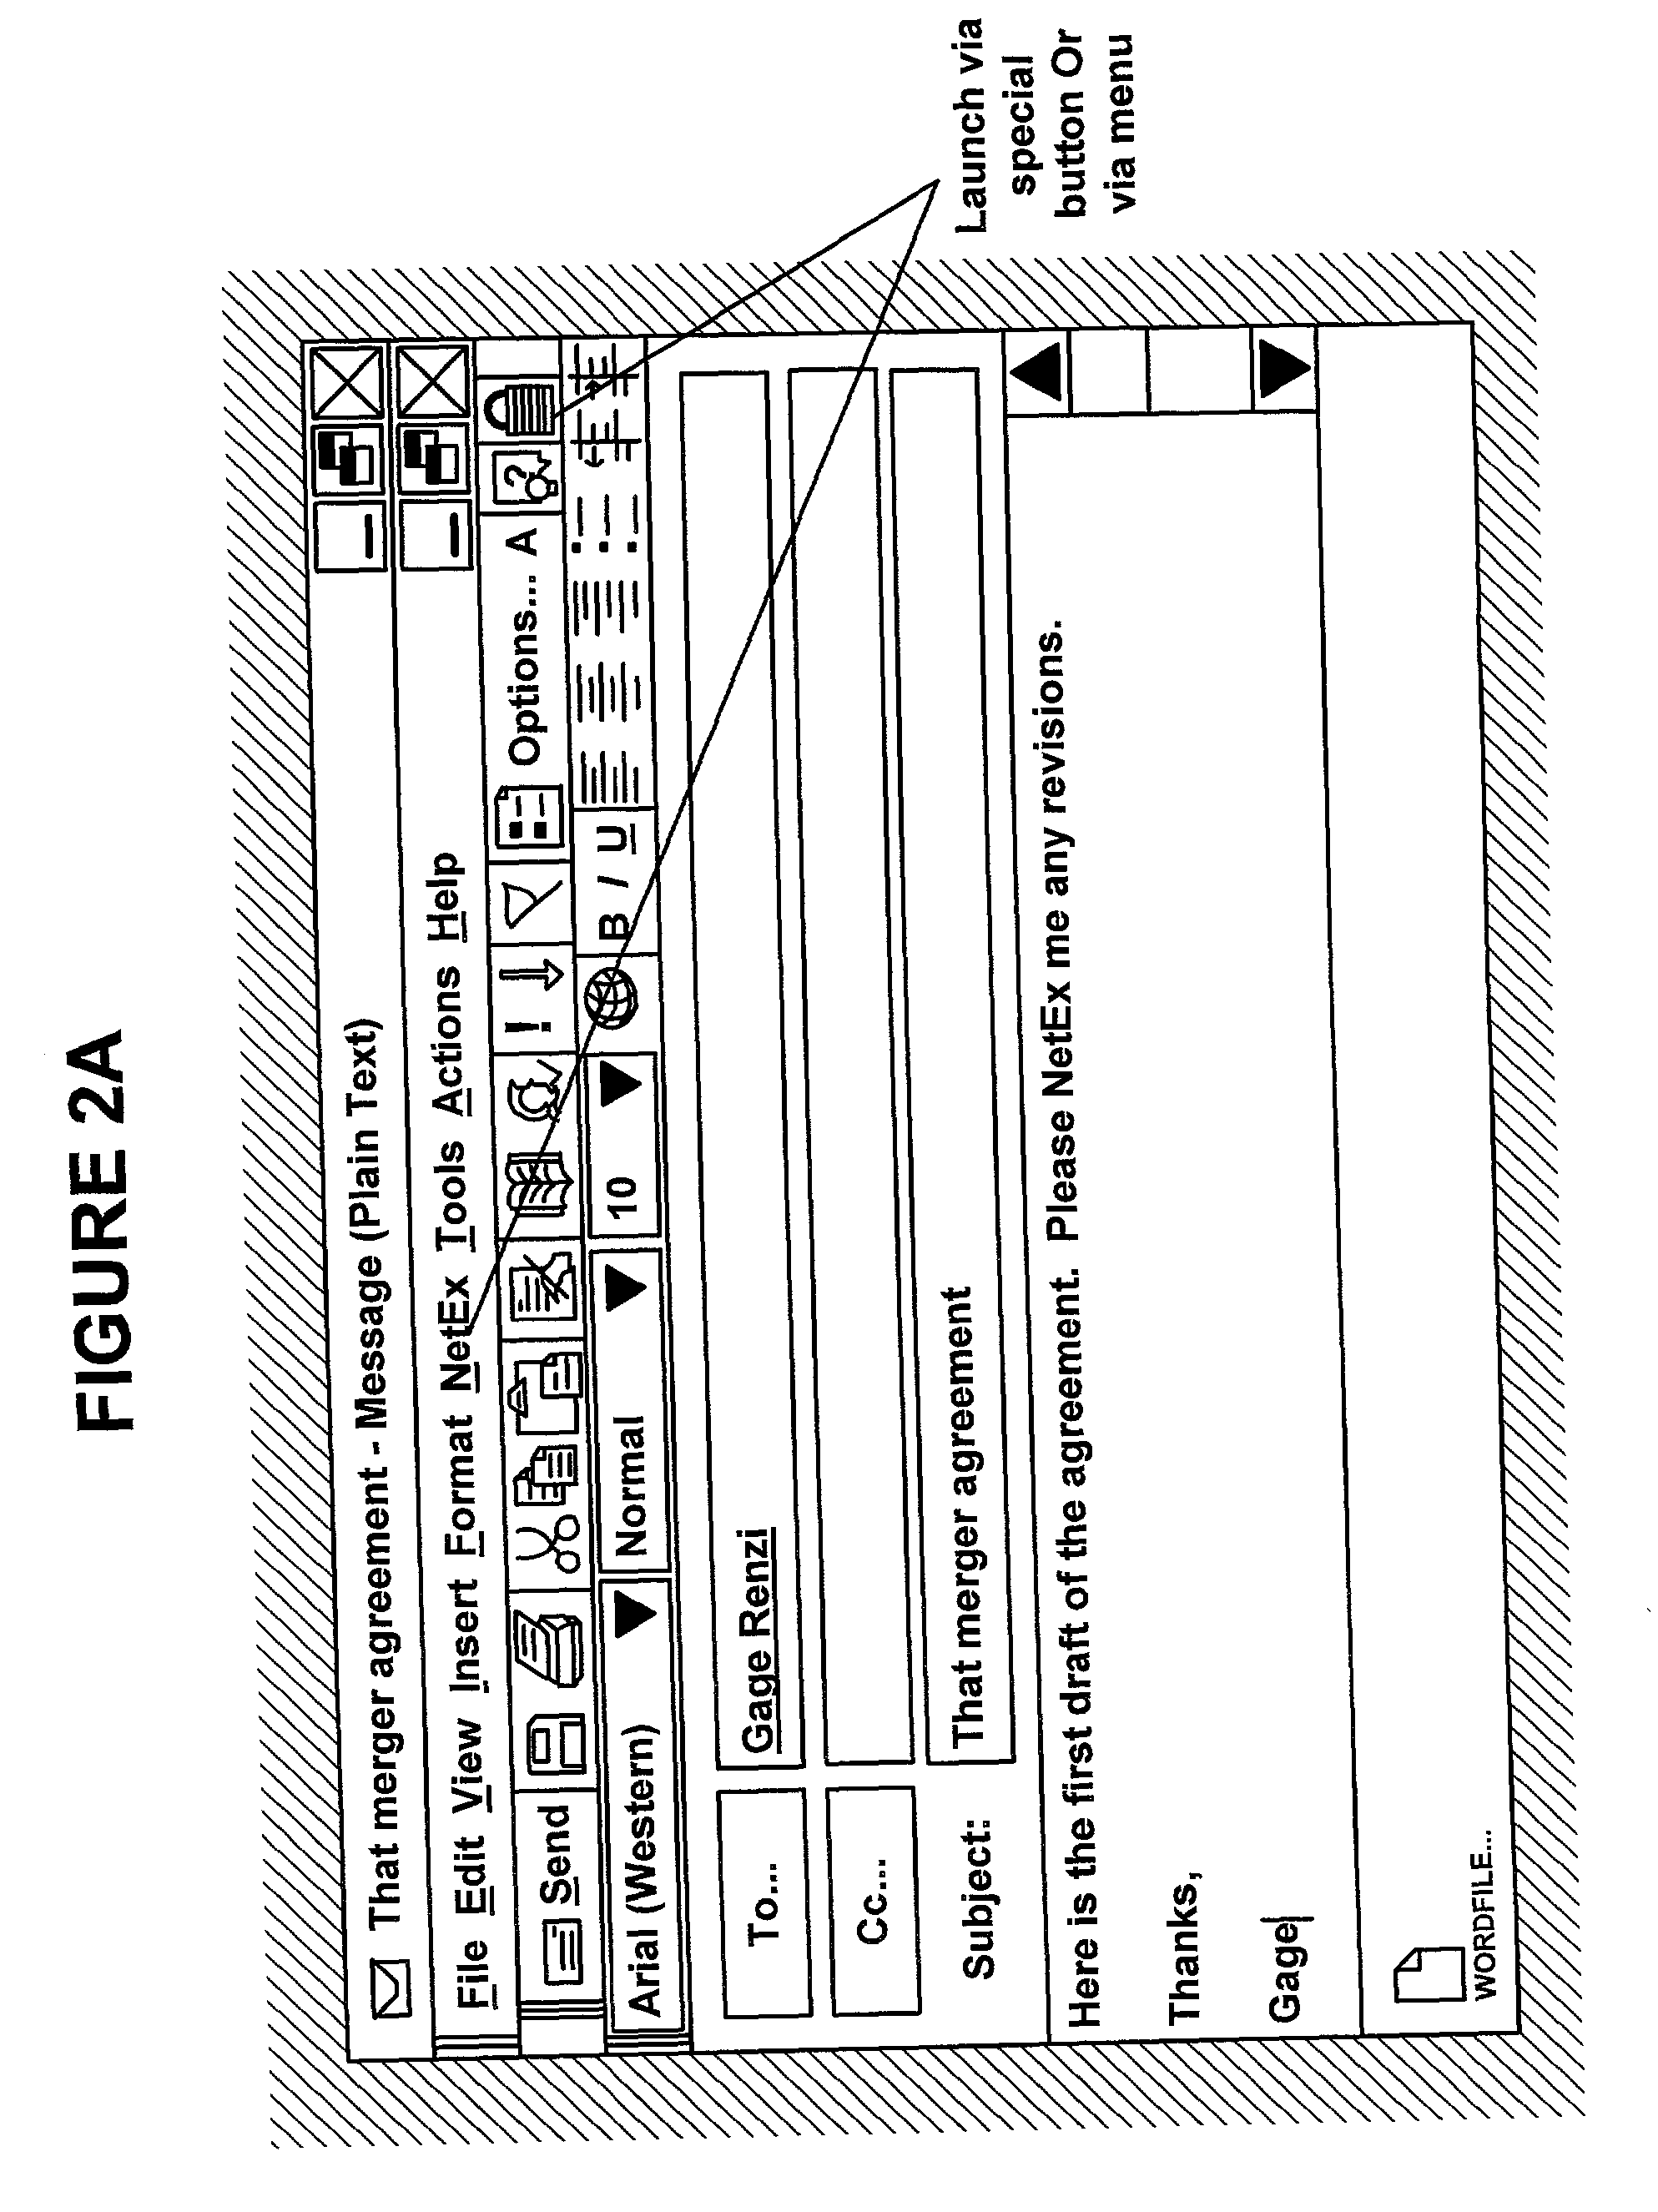 How To Process Invoices Patent Us  Secured Content Delivery System And Method  Receipt Of Delivery Word with Copy Of Invoice Template Pdf Patent Drawing Sample Receipt Letter For Cash Pdf